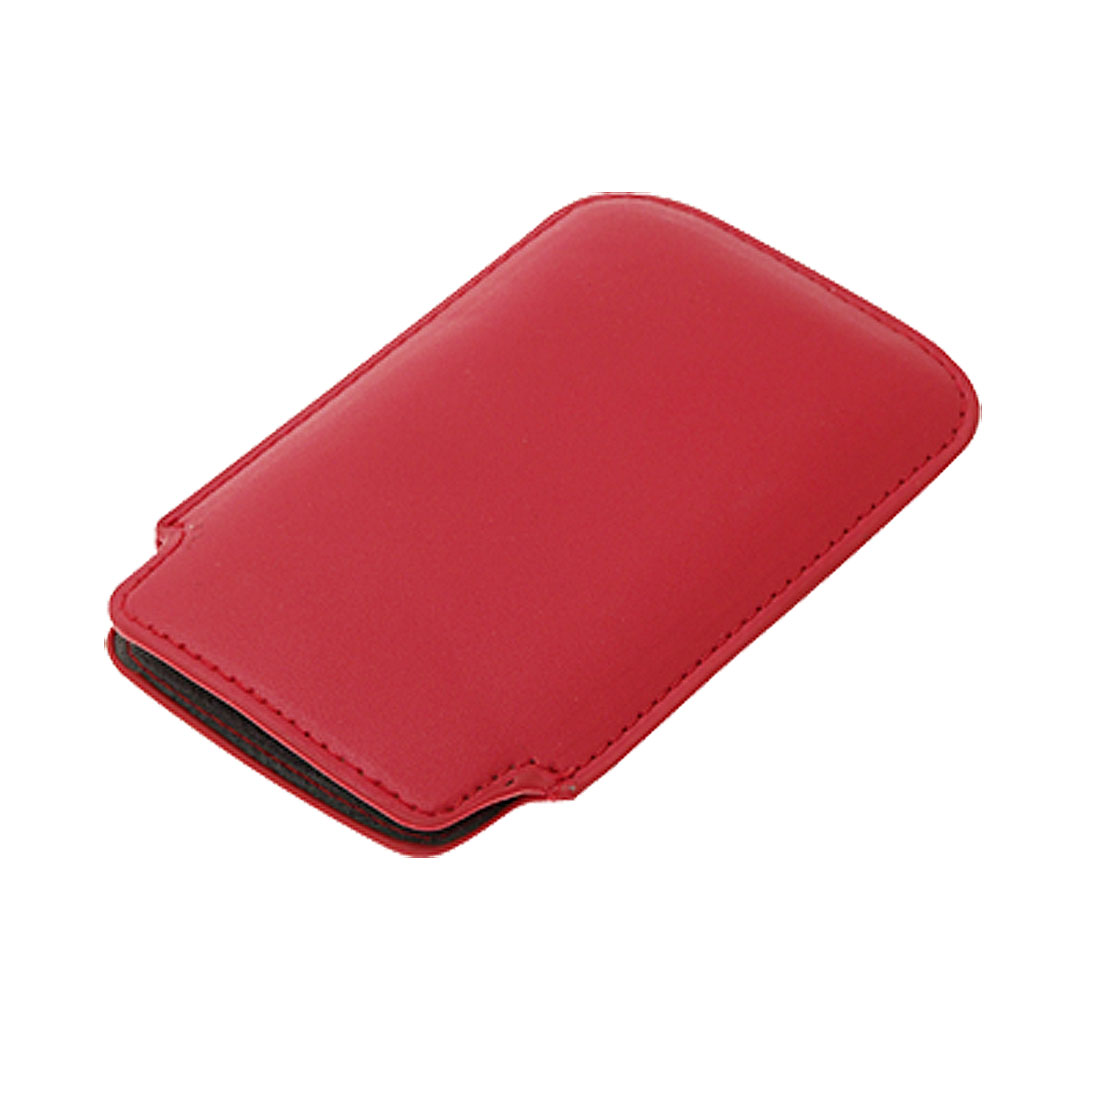 Red Portable Slim Leather Sleeve Case for Apple iPhone 3G / 3GS